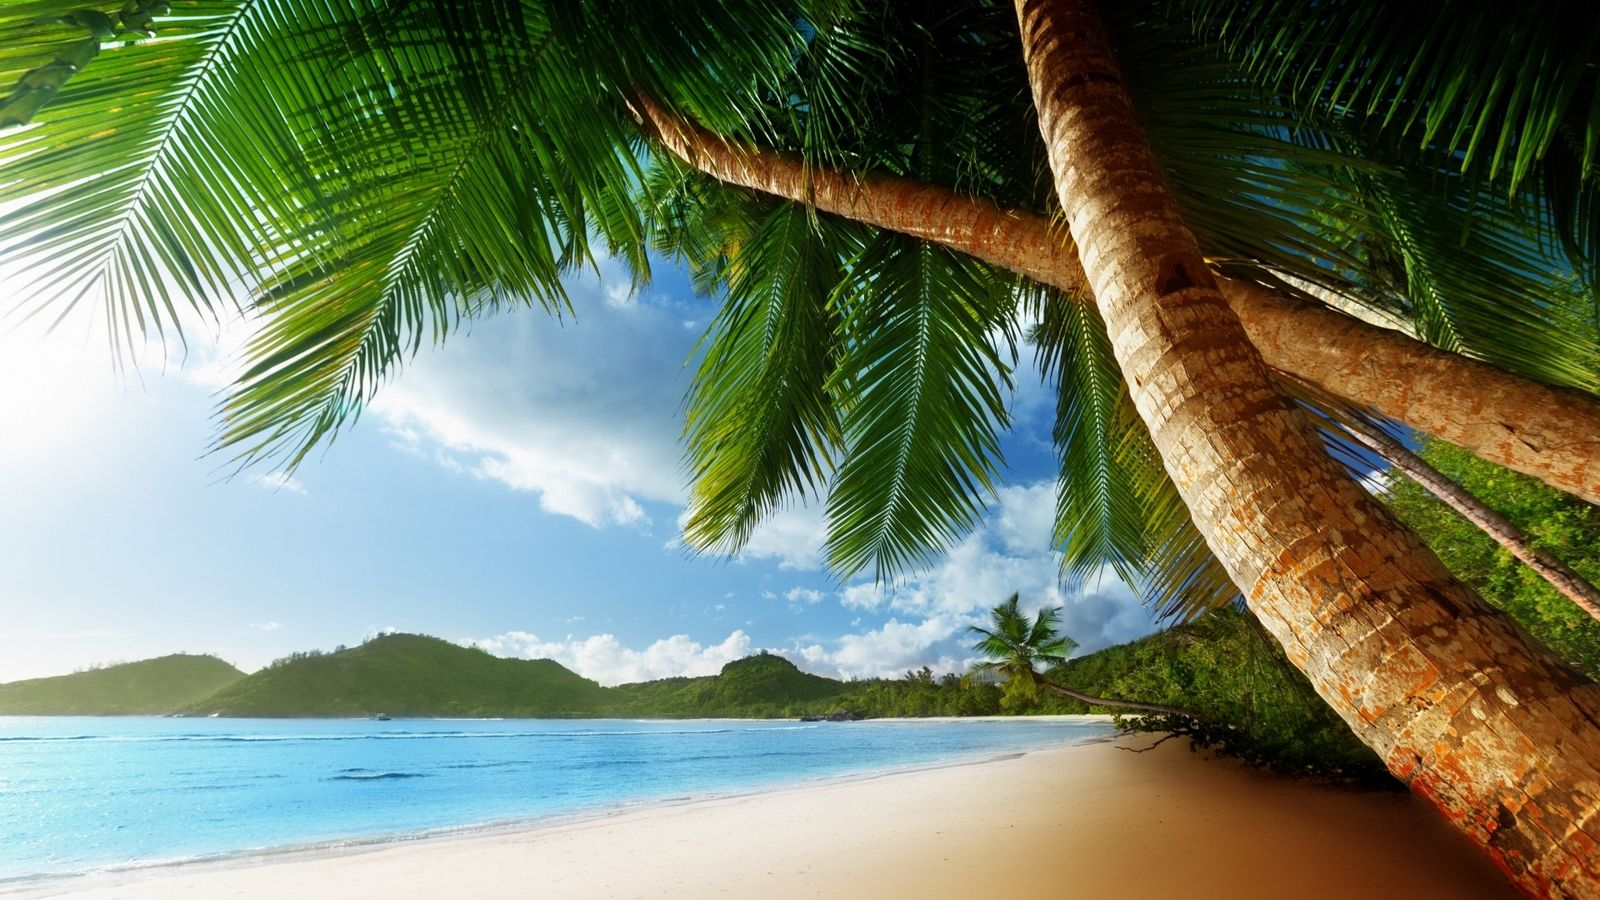 Chill Out Beach Palm Trees